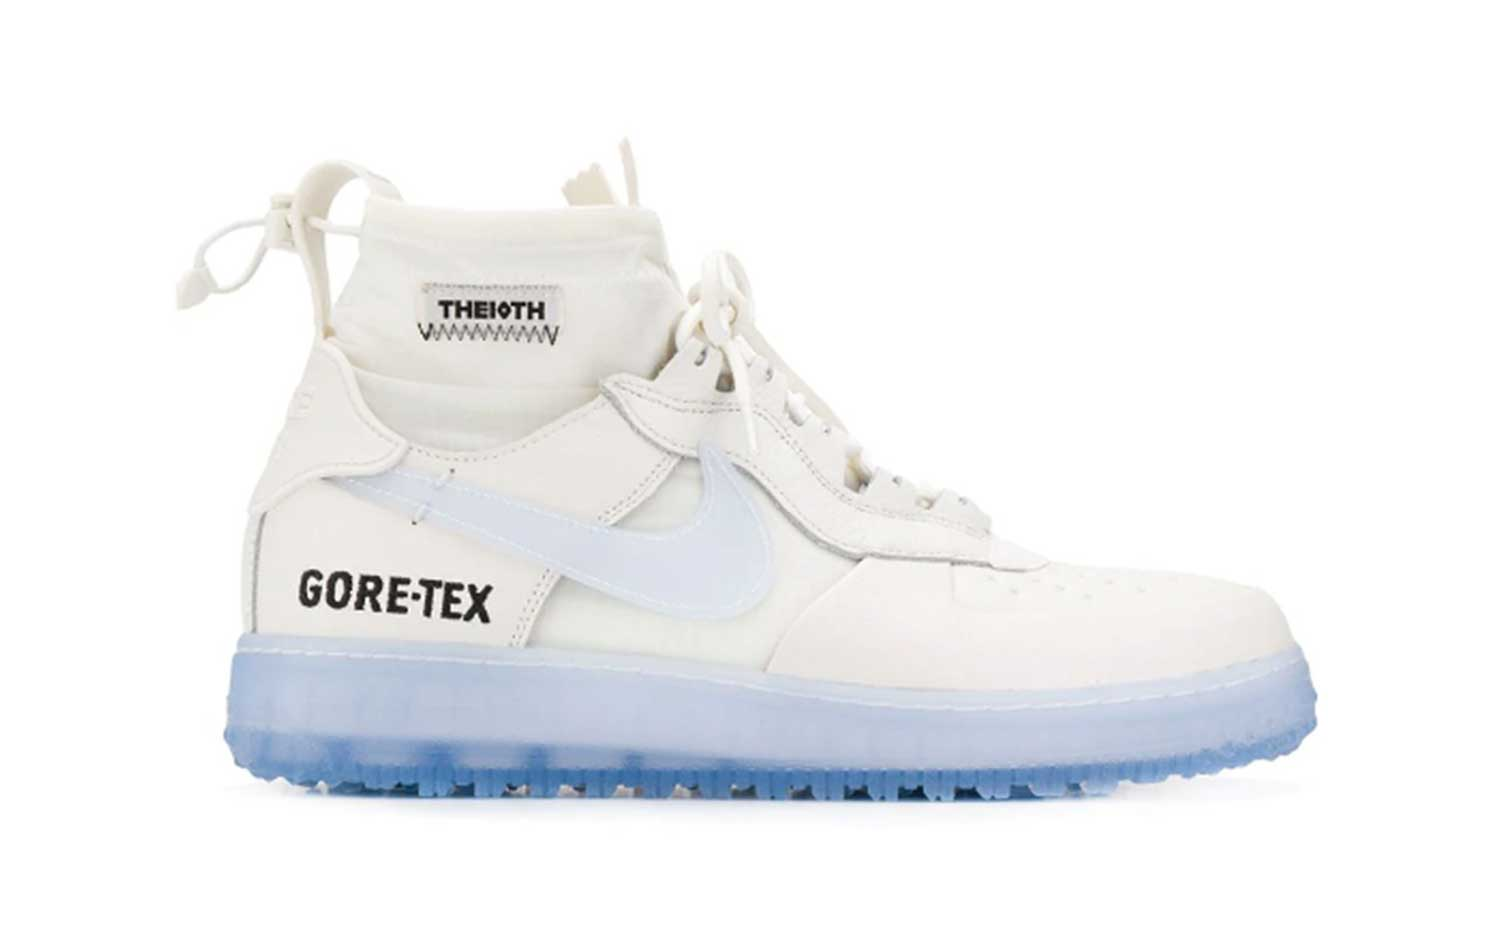 Nike Air Force 1 GORE-TEX, 22818 рублей